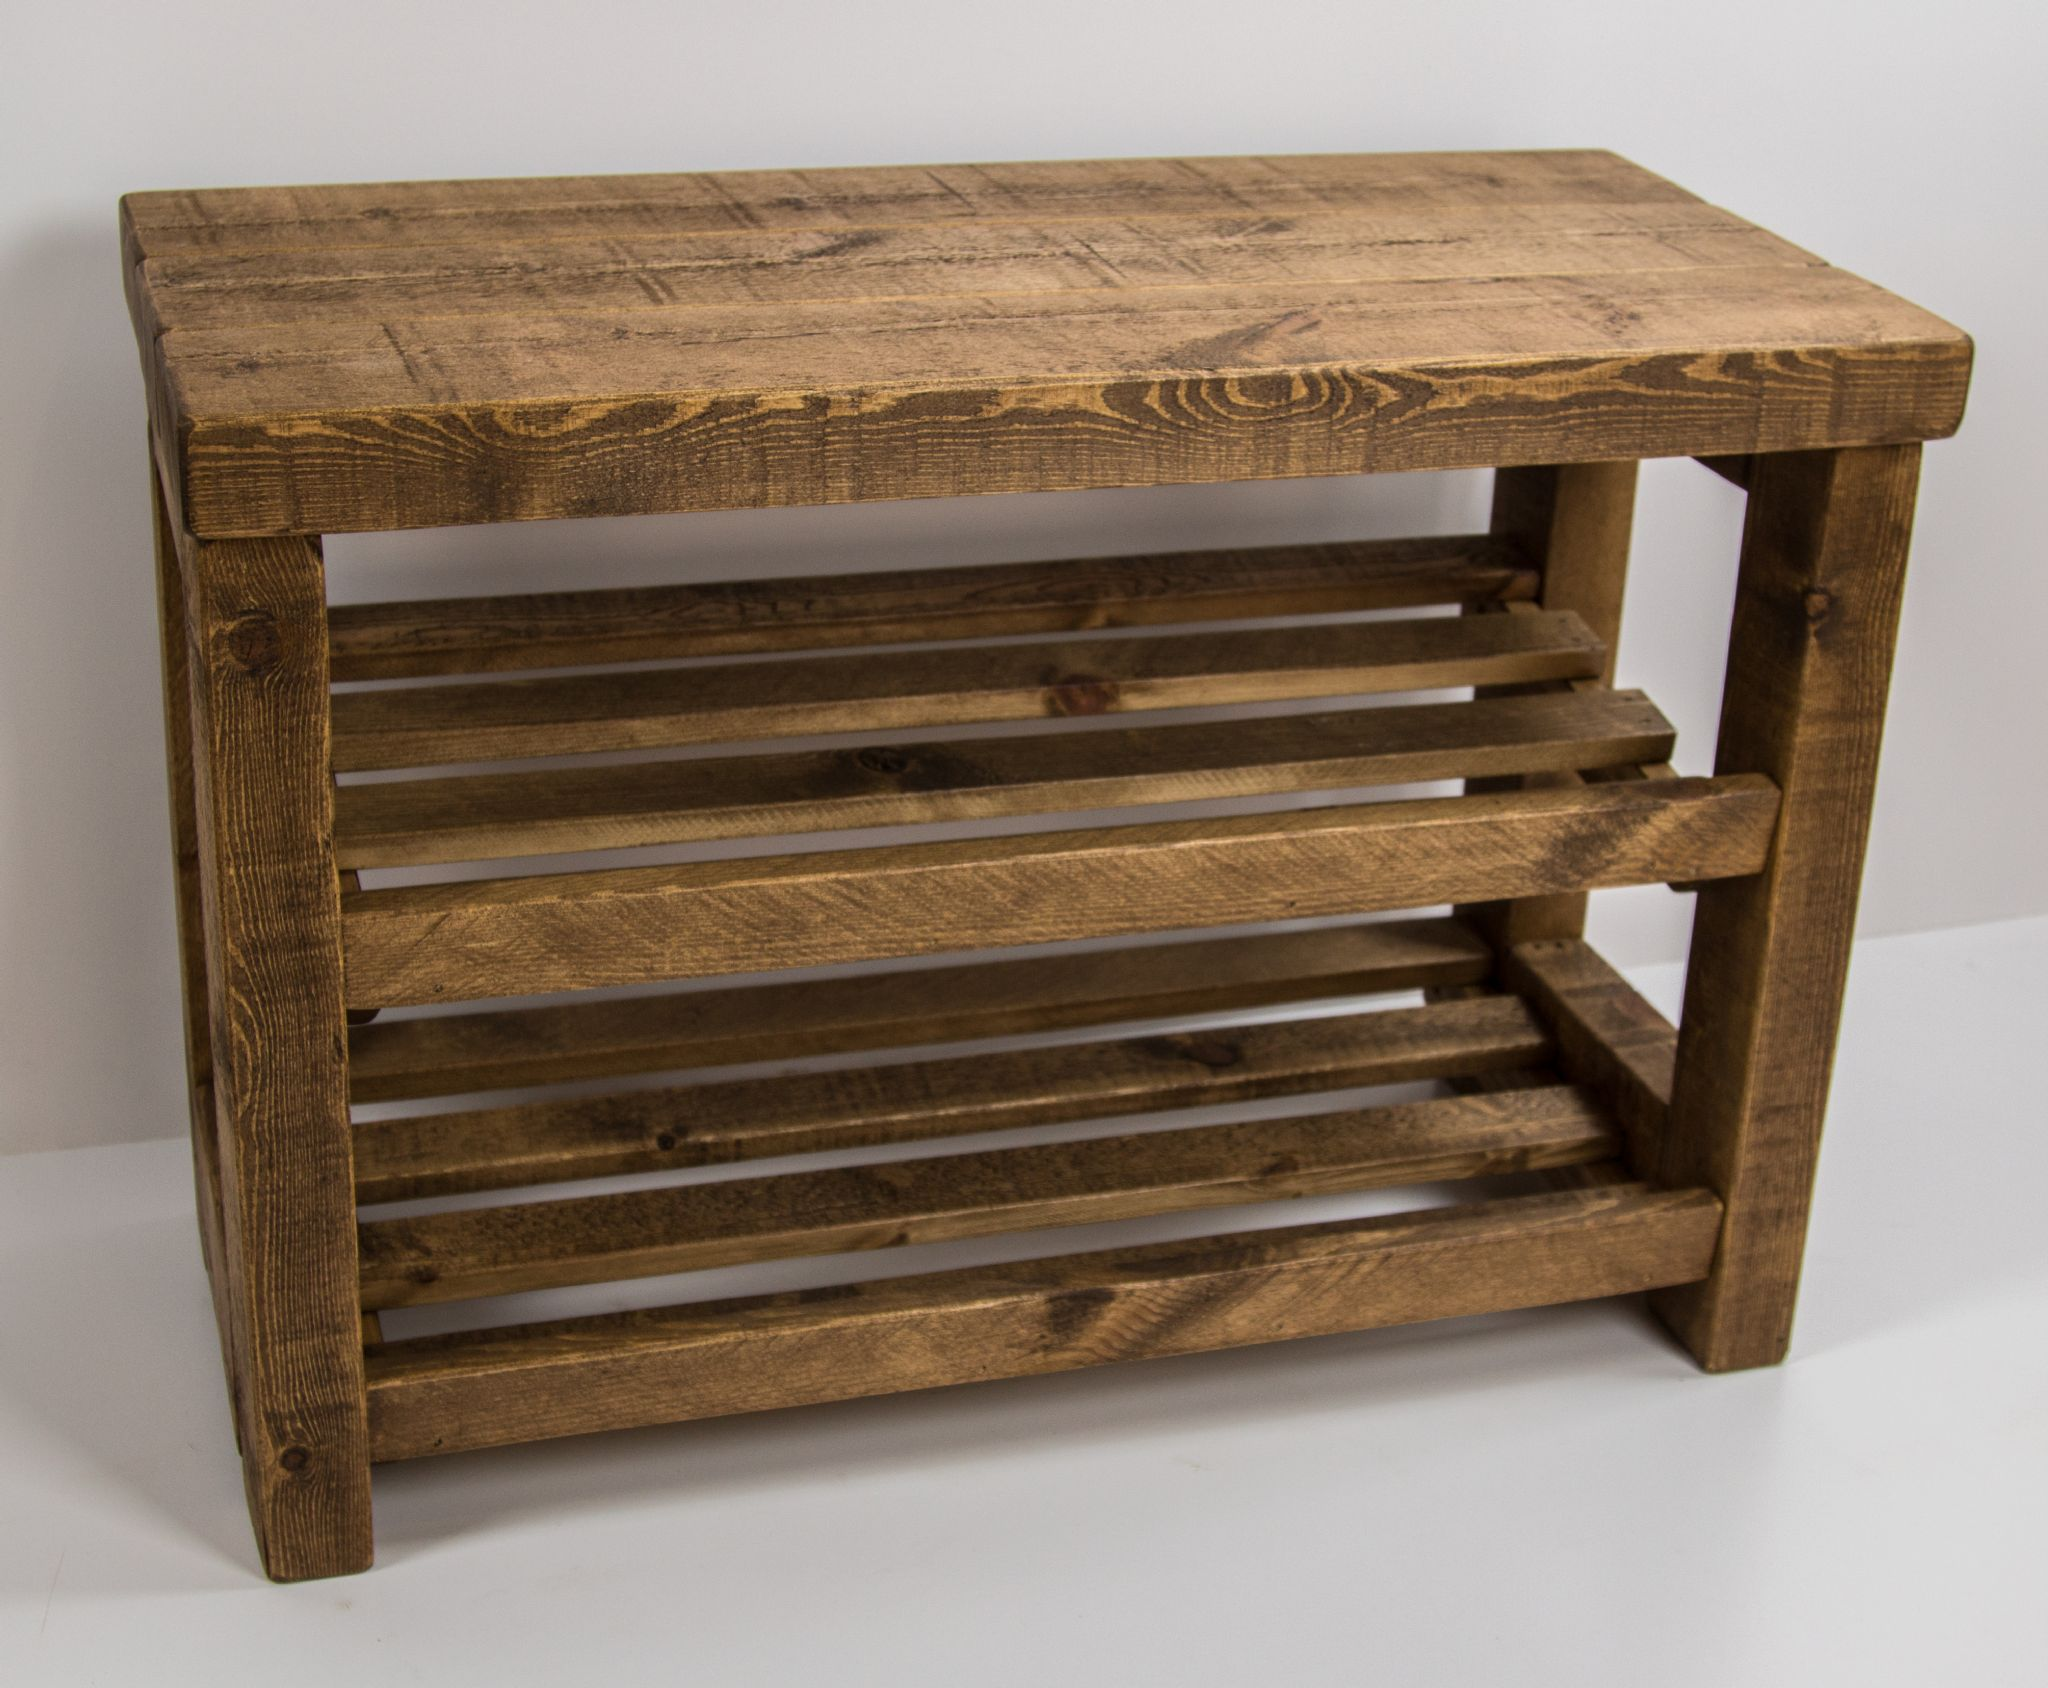 Rustic wooden shoe rack with seat 6 - 9 pairs